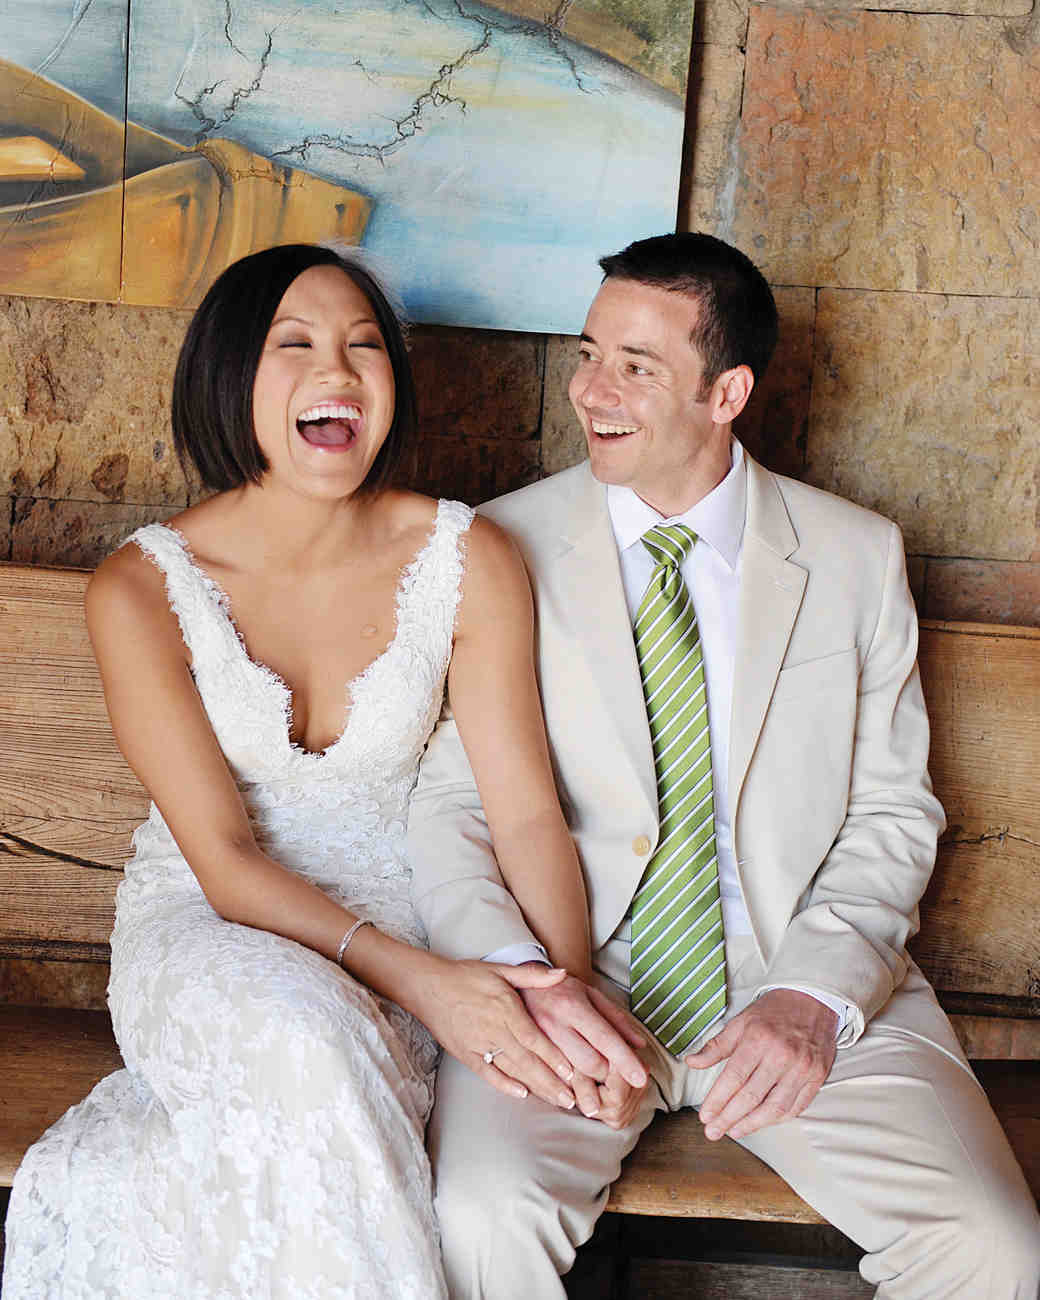 marriage-tips-abigail-jamey-laughing-sip10-mwds106380-0215.jpg